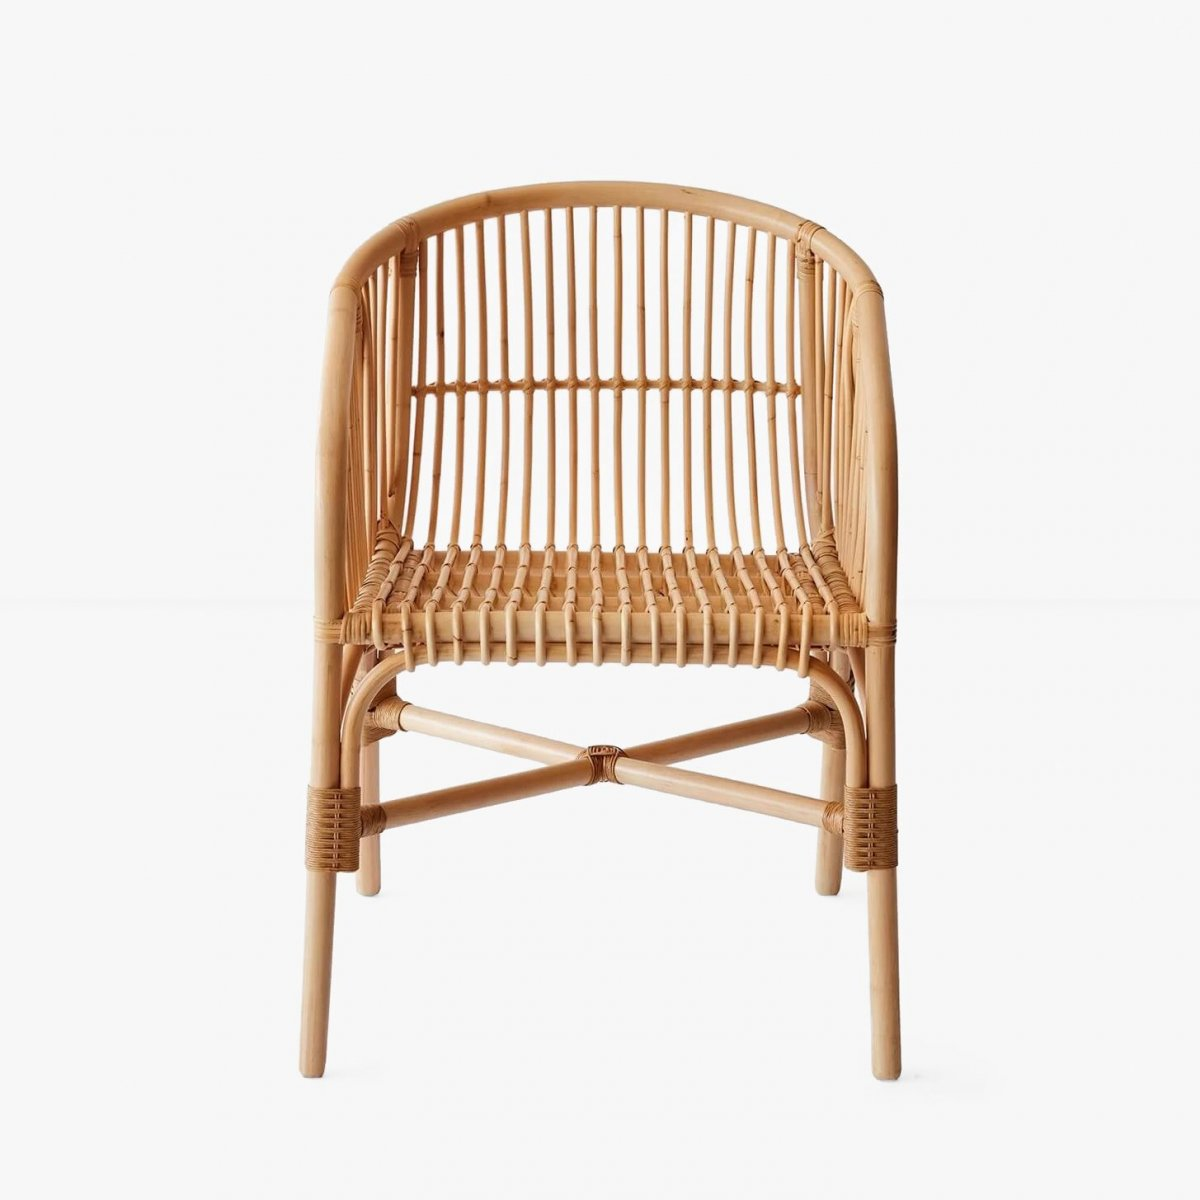 Jakarta Rattan Dining Chair, front view.